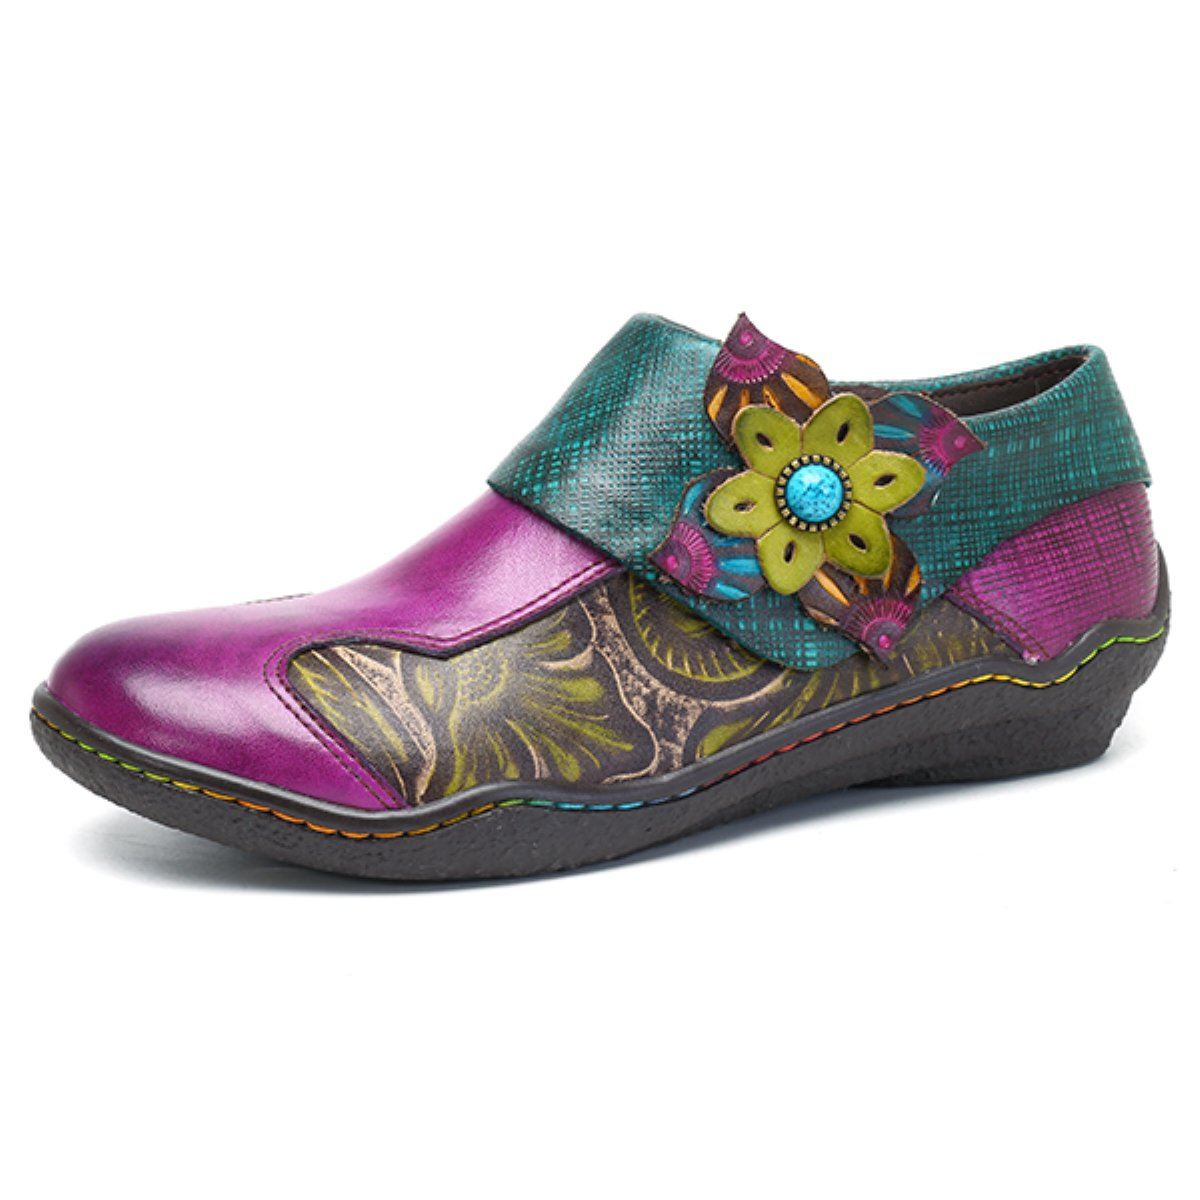 Socofy Oxford Leather Shoes,Women's Handmade Printing Splicing Plant Pattern Hook Loop Flat Vintage Shoes Claret 9 B(M) US